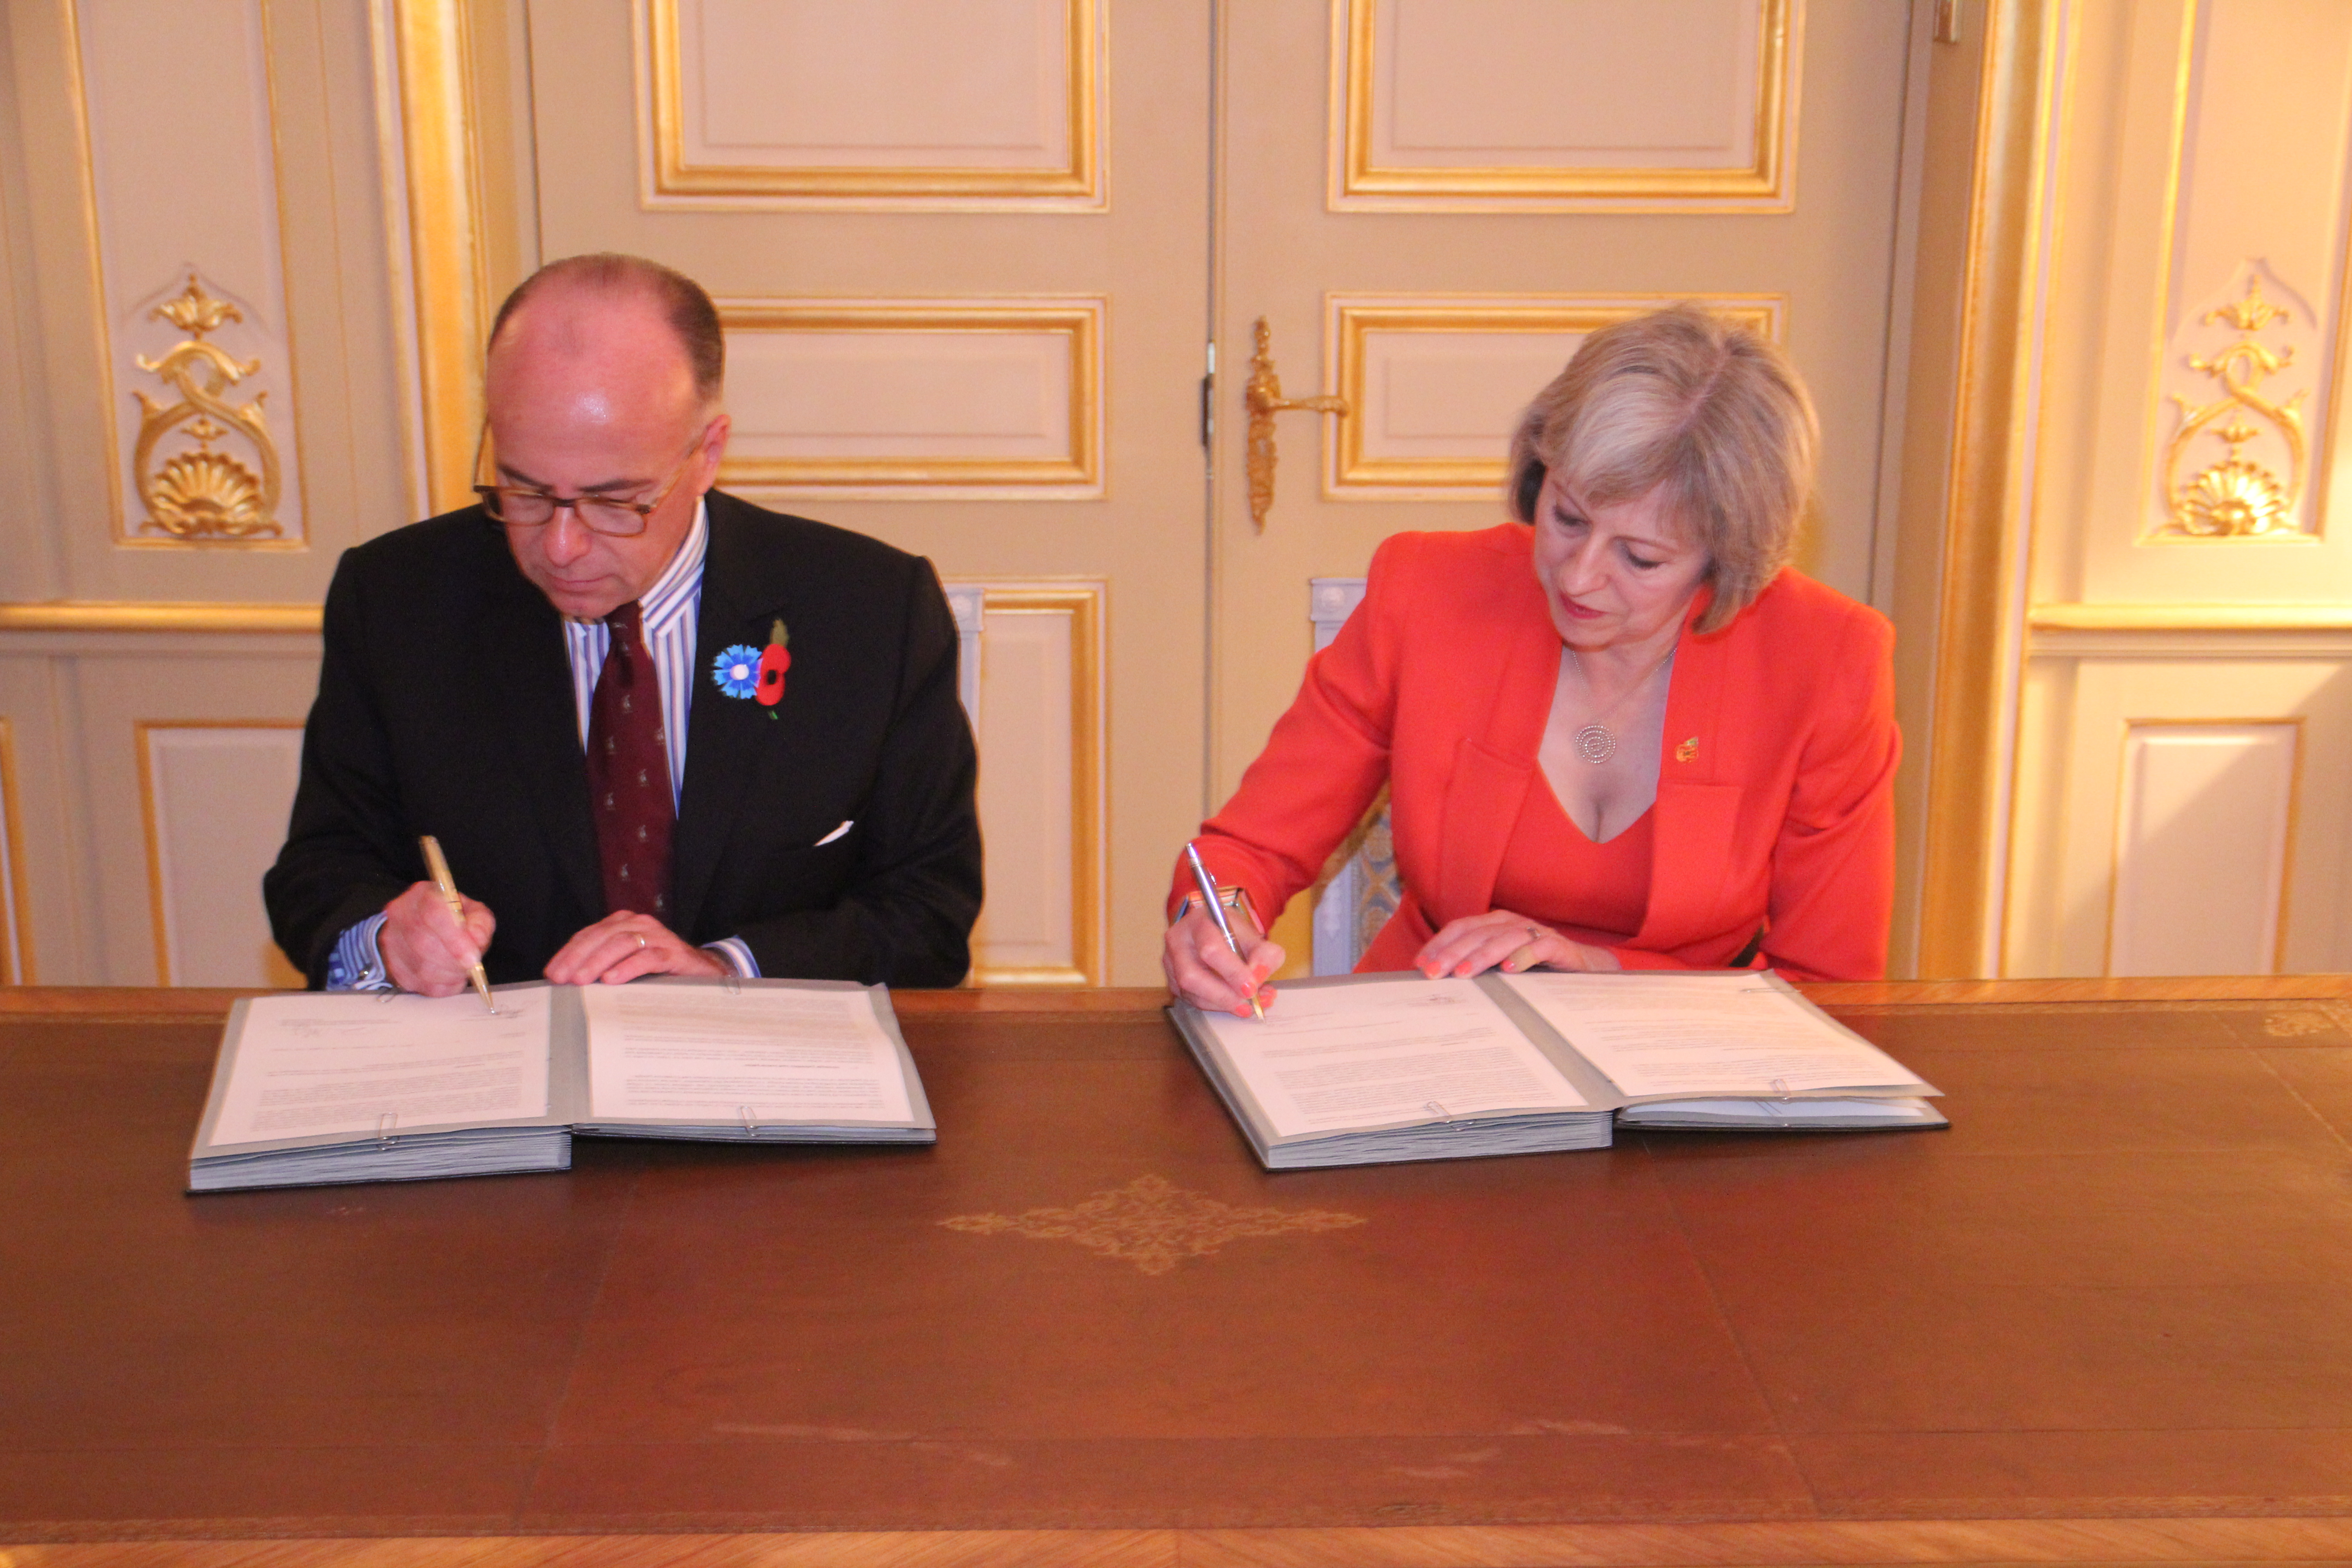 Bernard cazeneuve rencontre son homologue t may londres for Chambre commerce franco britannique